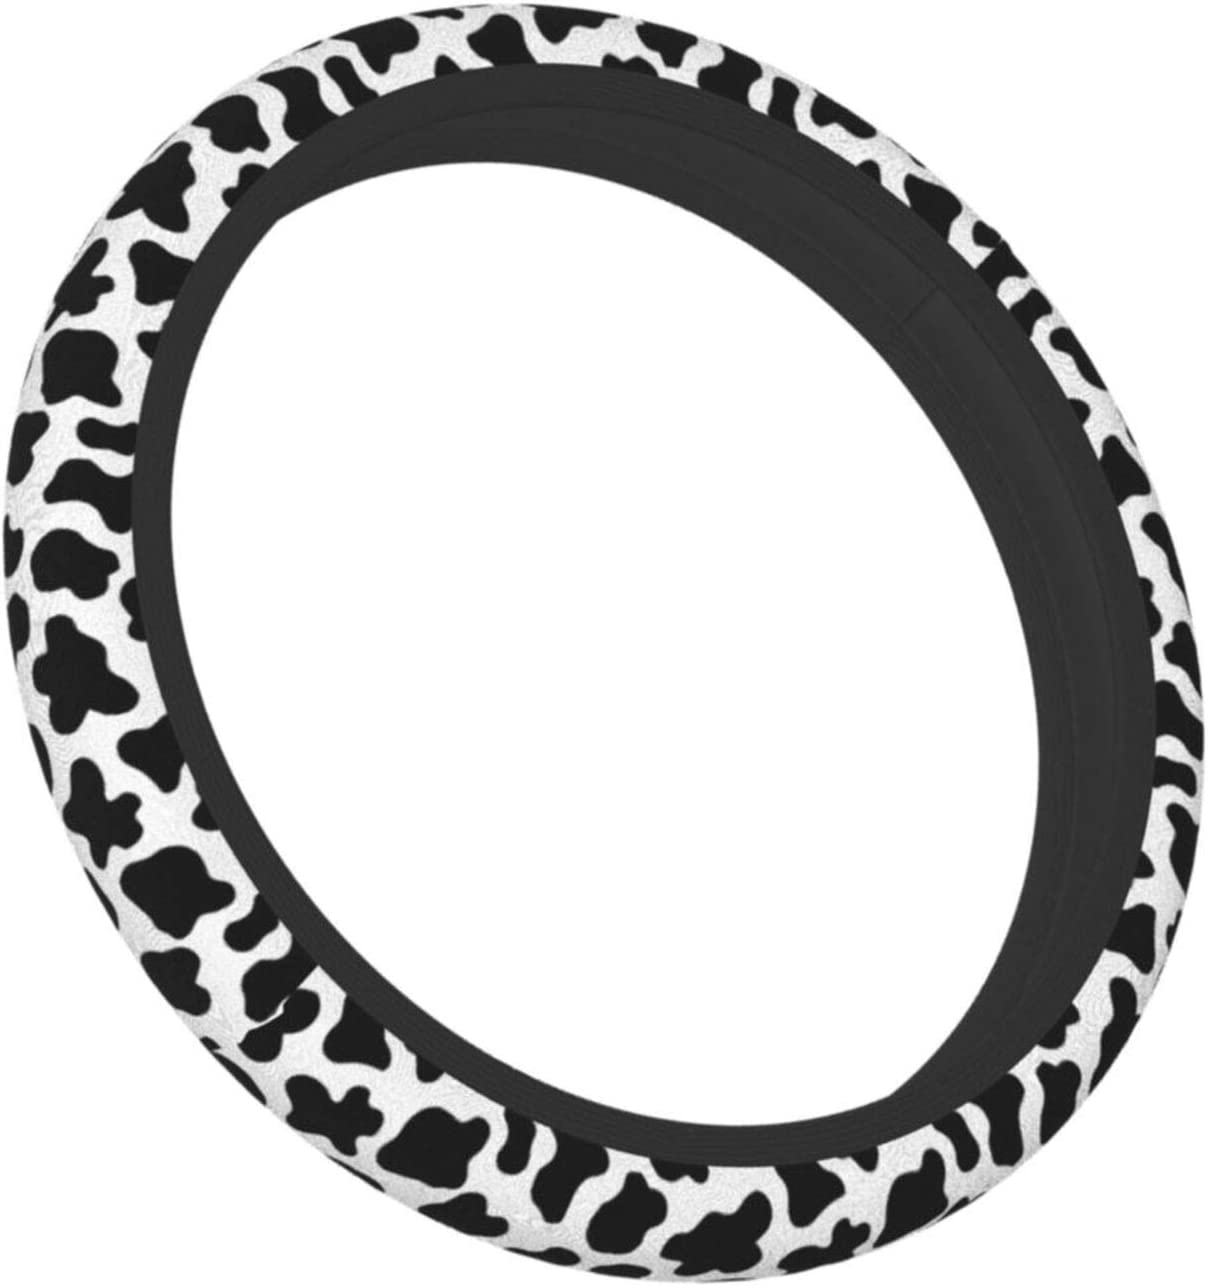 Los Angeles Mall MSGUIDE Cow Print online shopping Steering Wheel Cover Univ inch 15 Women for 14